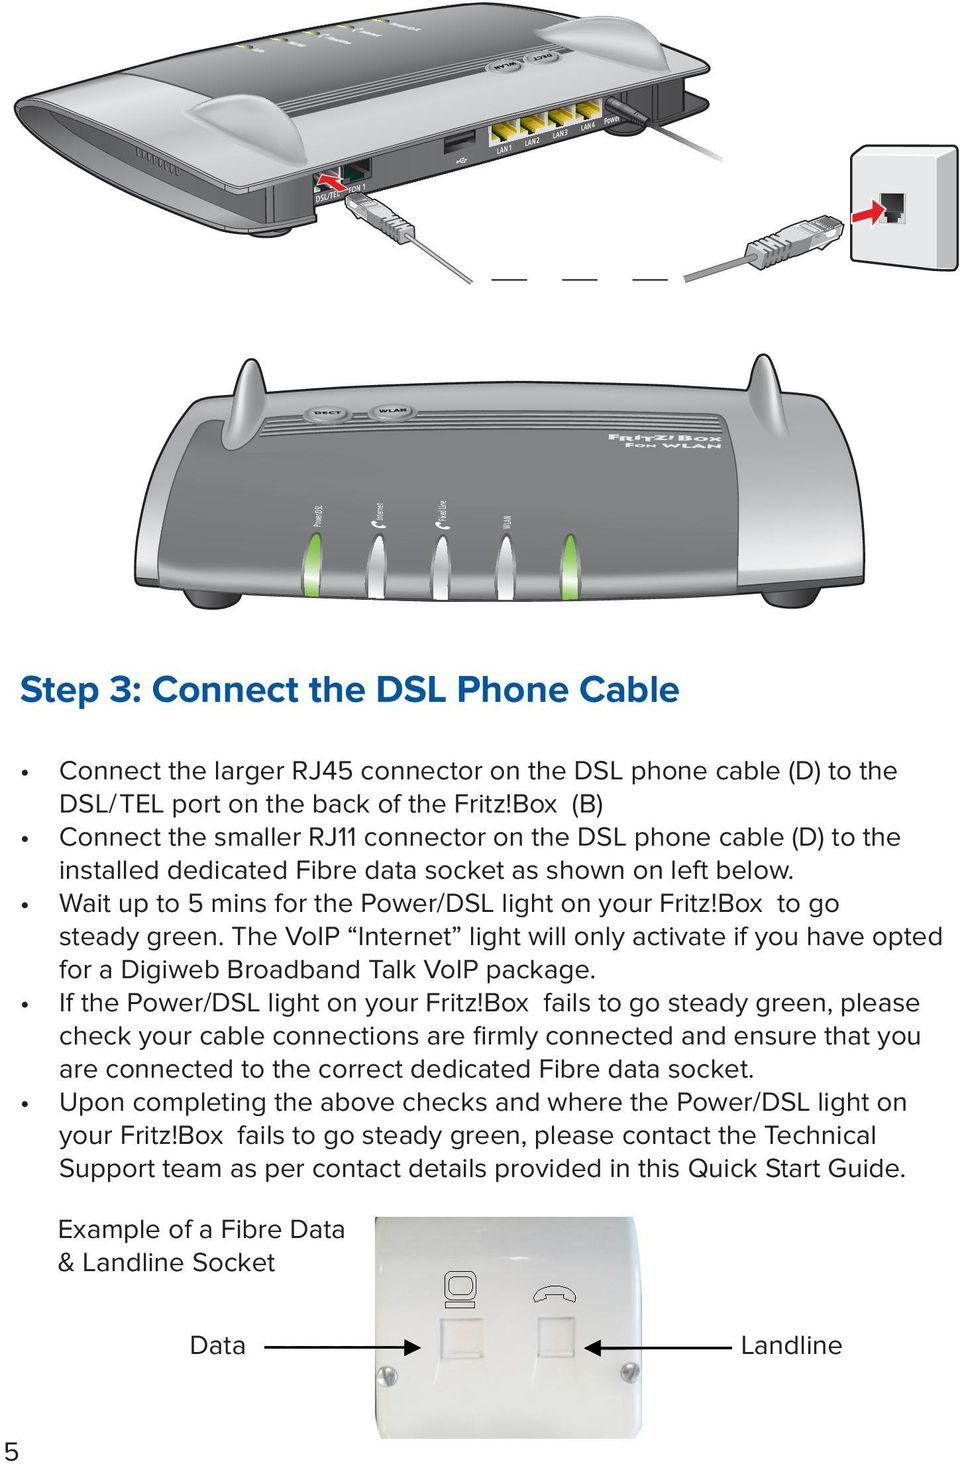 Wait up to 5 mins for the Power/DSL light on your Fritz!Box to go steady green. The VoIP Internet light will only activate if you have opted for a Digiweb Broadband Talk VoIP package.